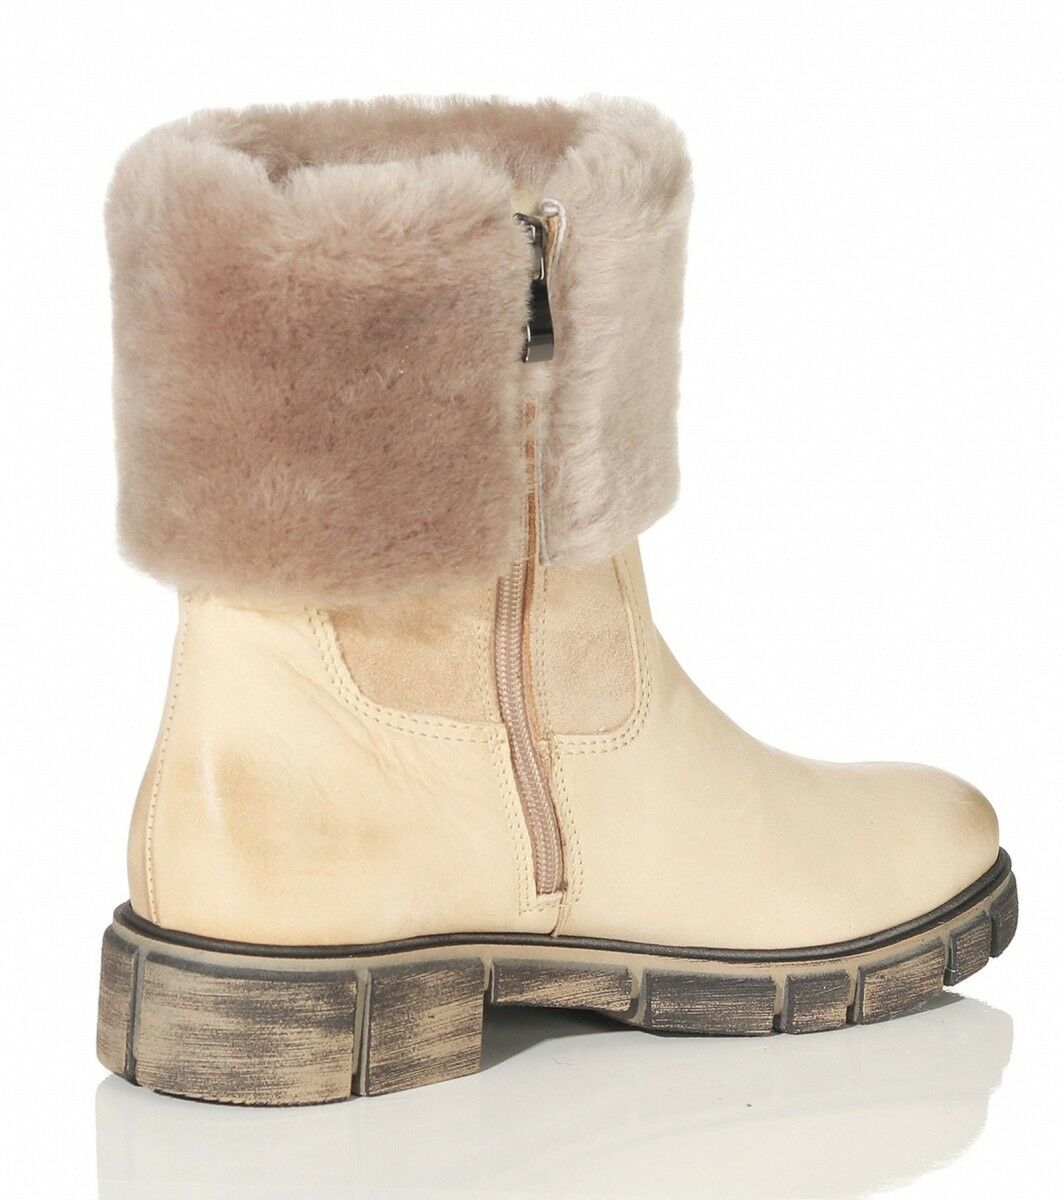 Hollert Lambskin Ankle Boots Ht-400 Kombu for Women Boots Boots Boots Real Leather Warm 434125